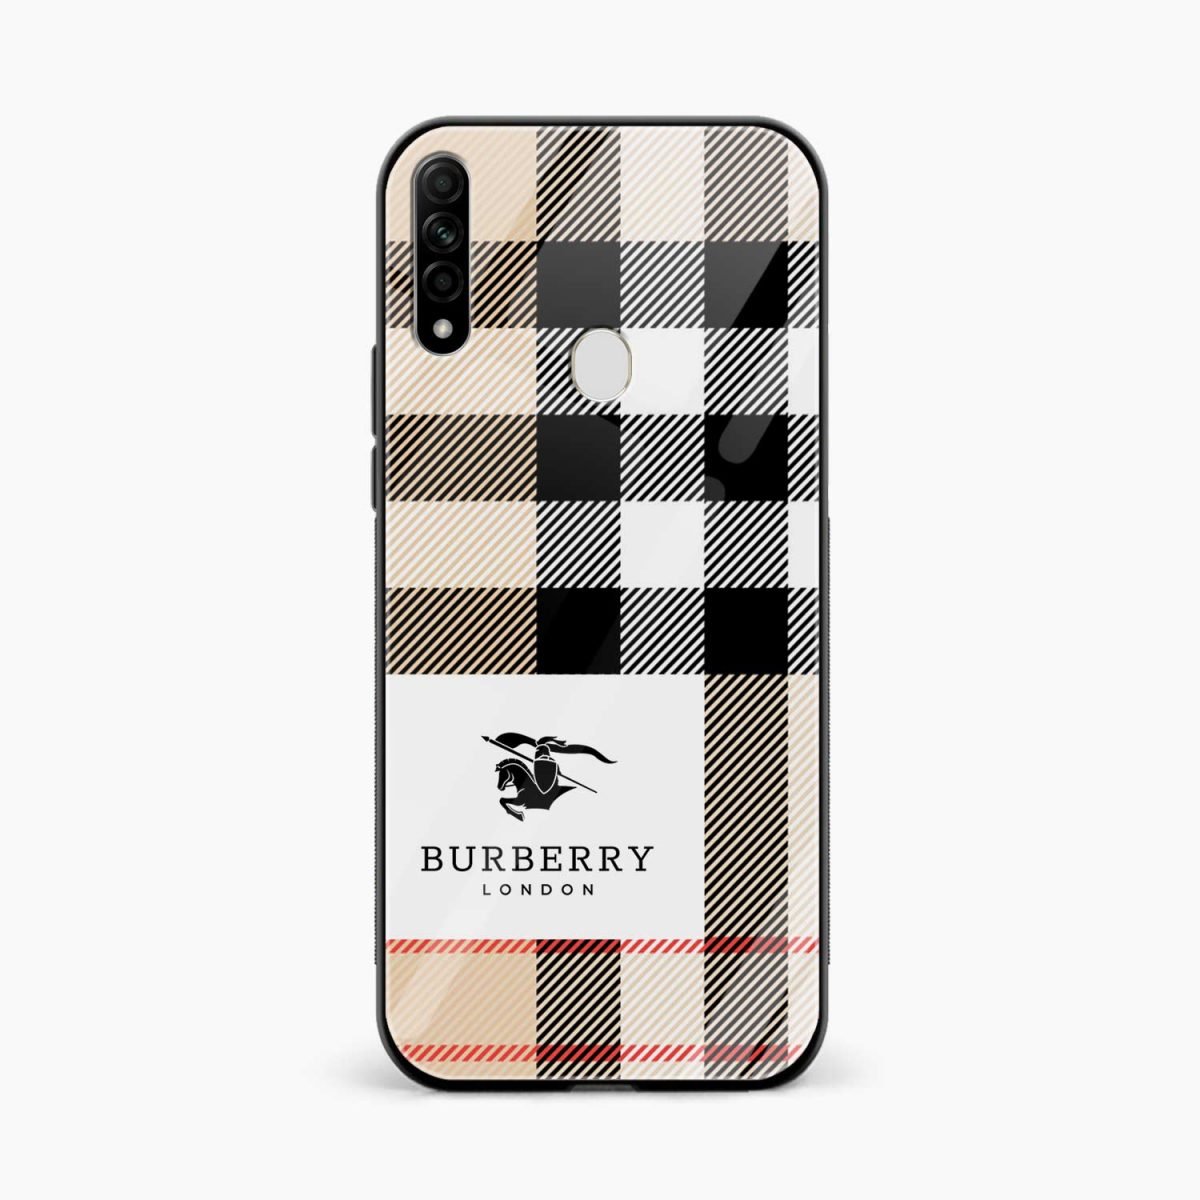 burberry cross lines pattern front view oppo a31 back cover